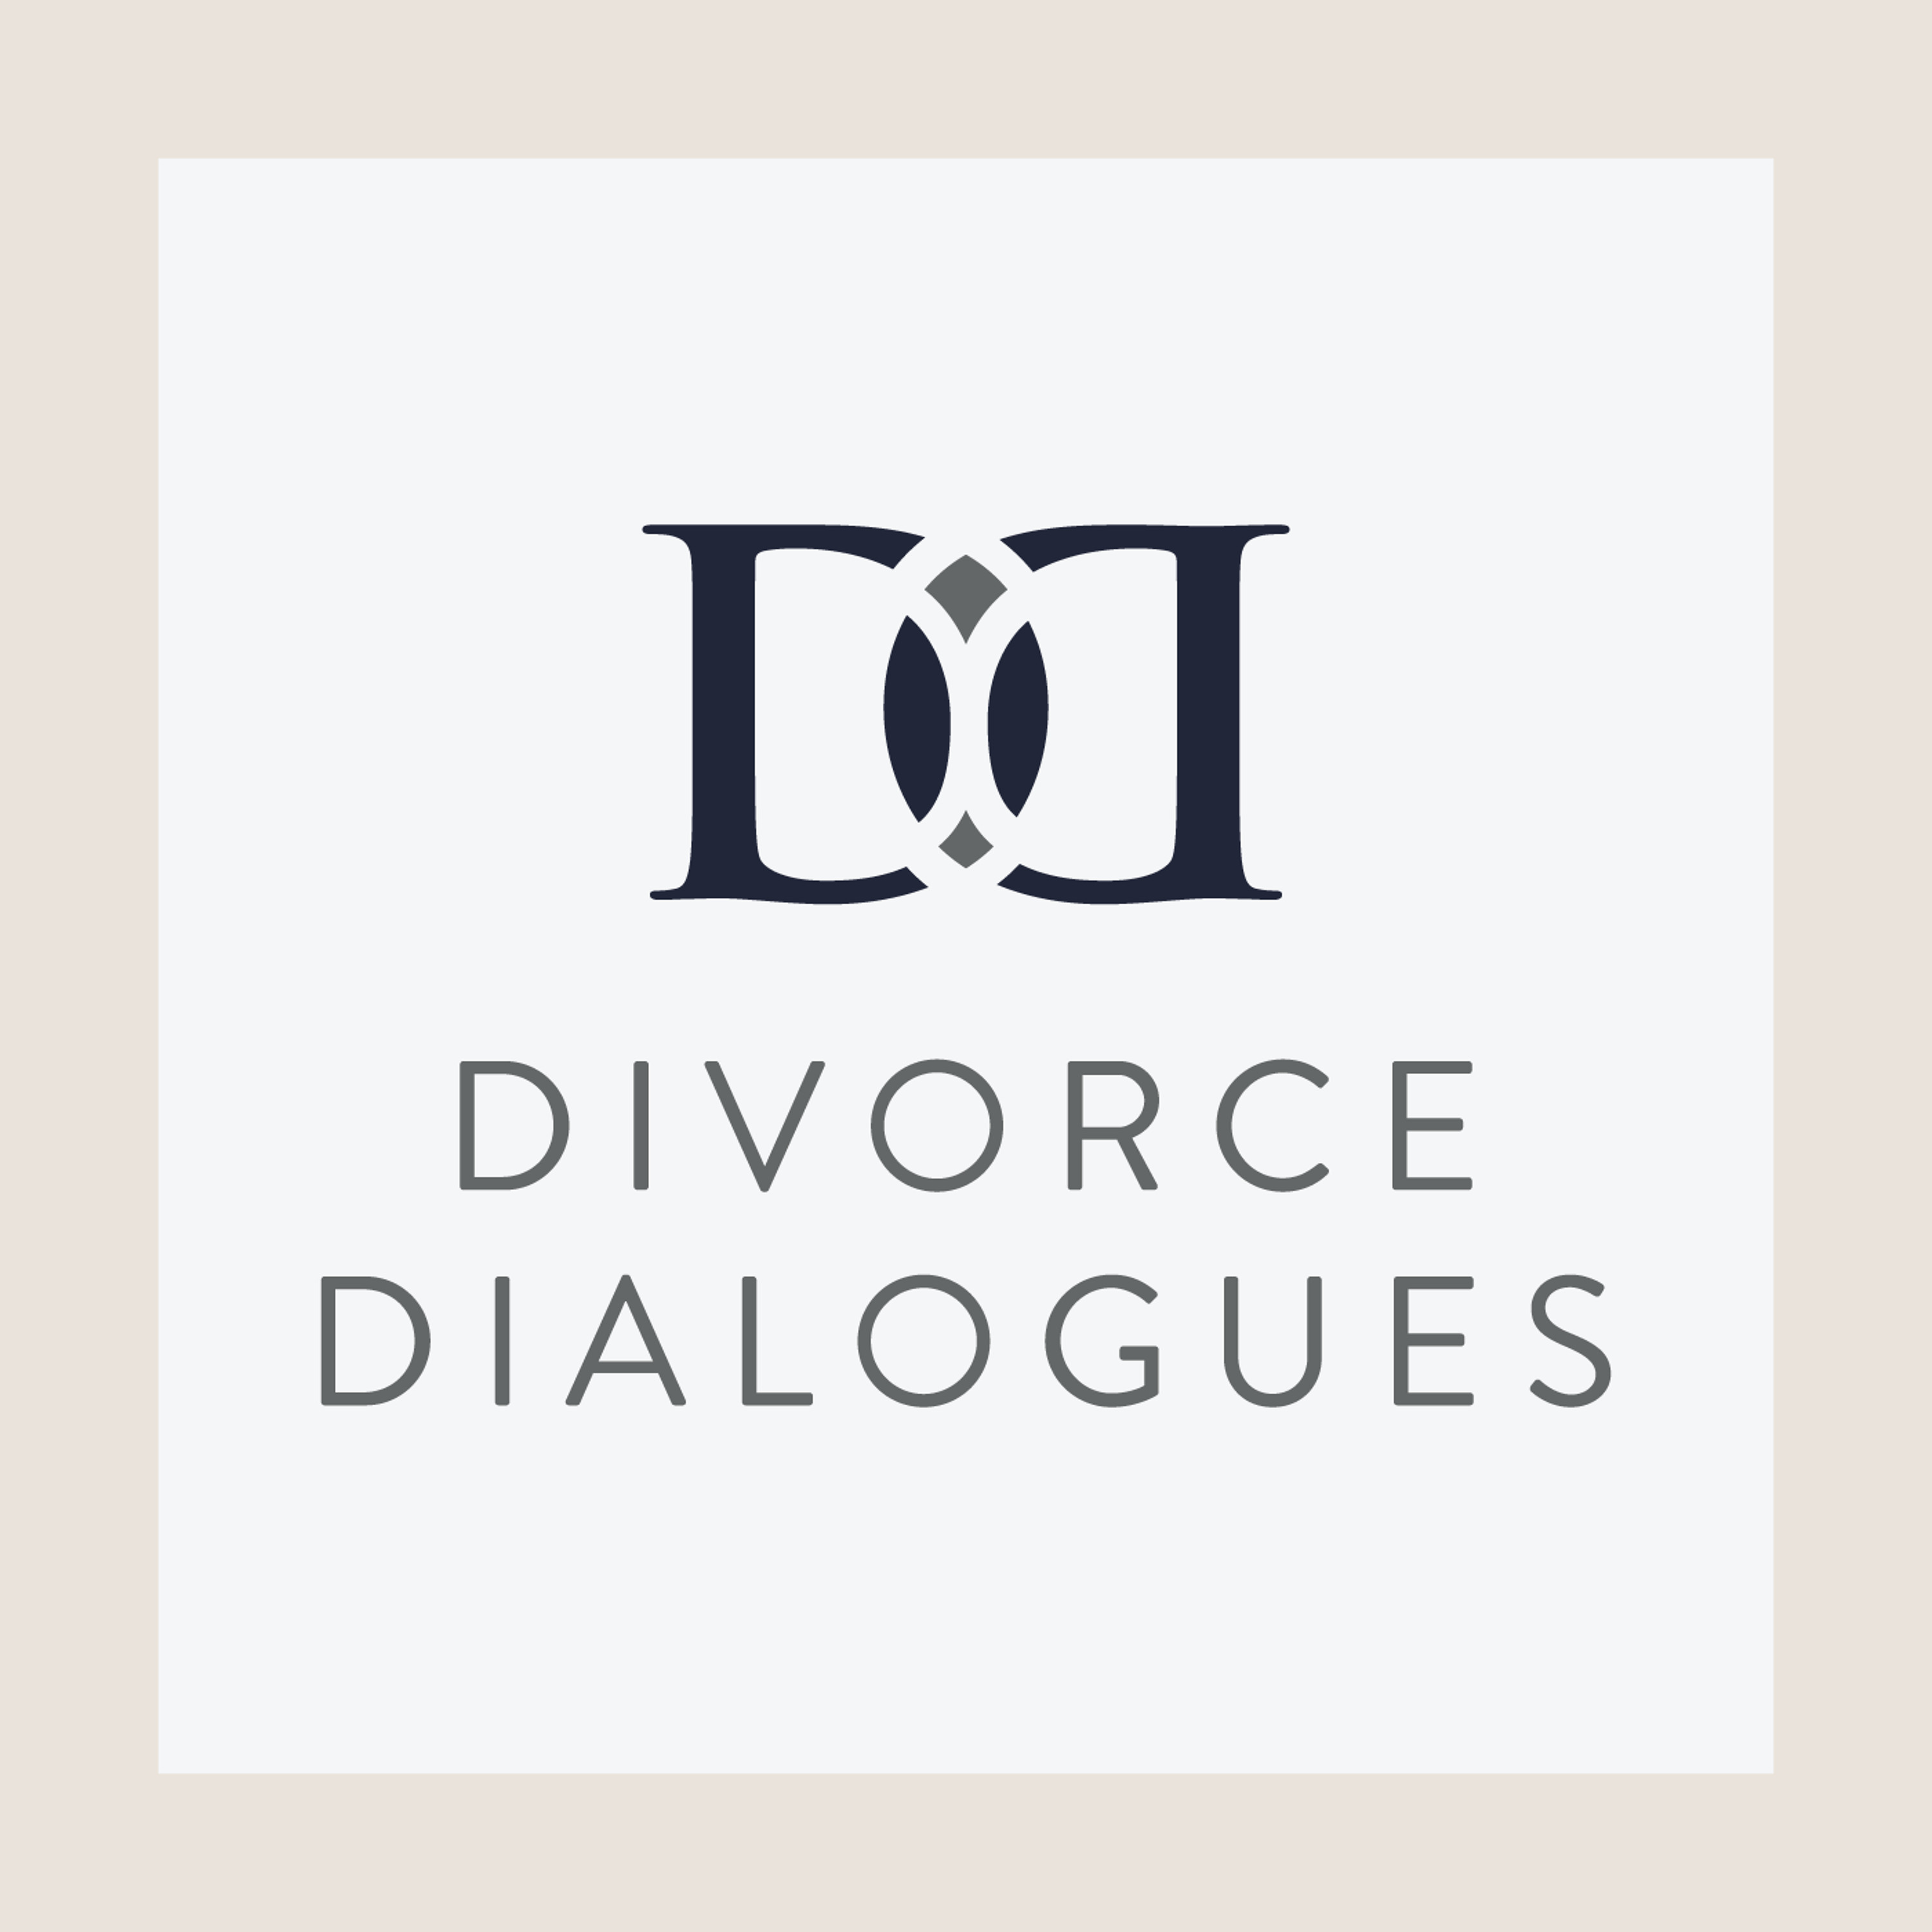 Divorce Dialogues - Changing the Cultural Narrative Around Stepparents and Blended Families with Monique Honaman